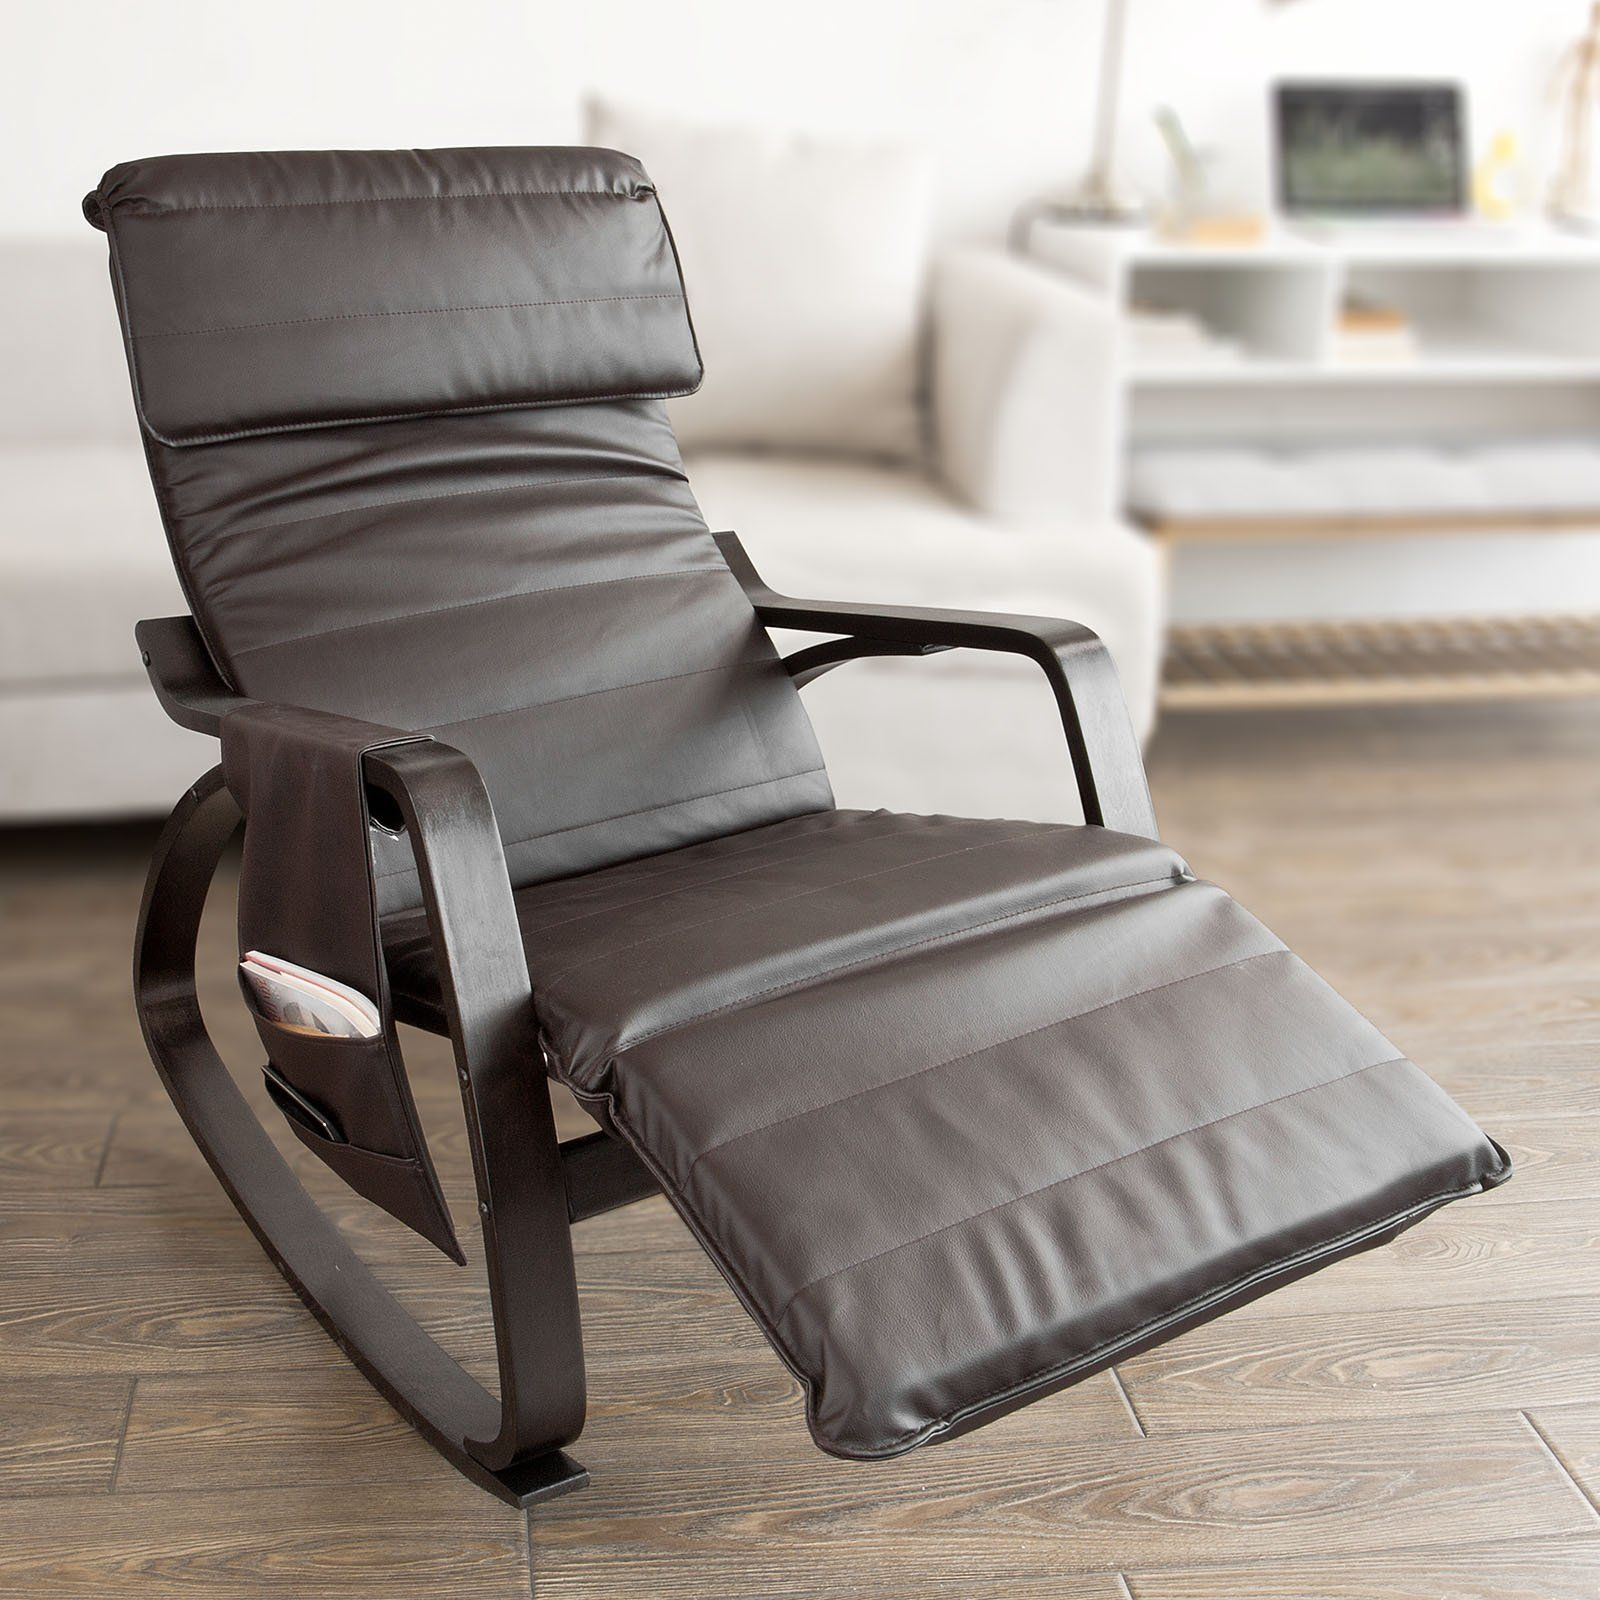 Haotian Comfortable Relax Rocking Chair, Lounge Chair